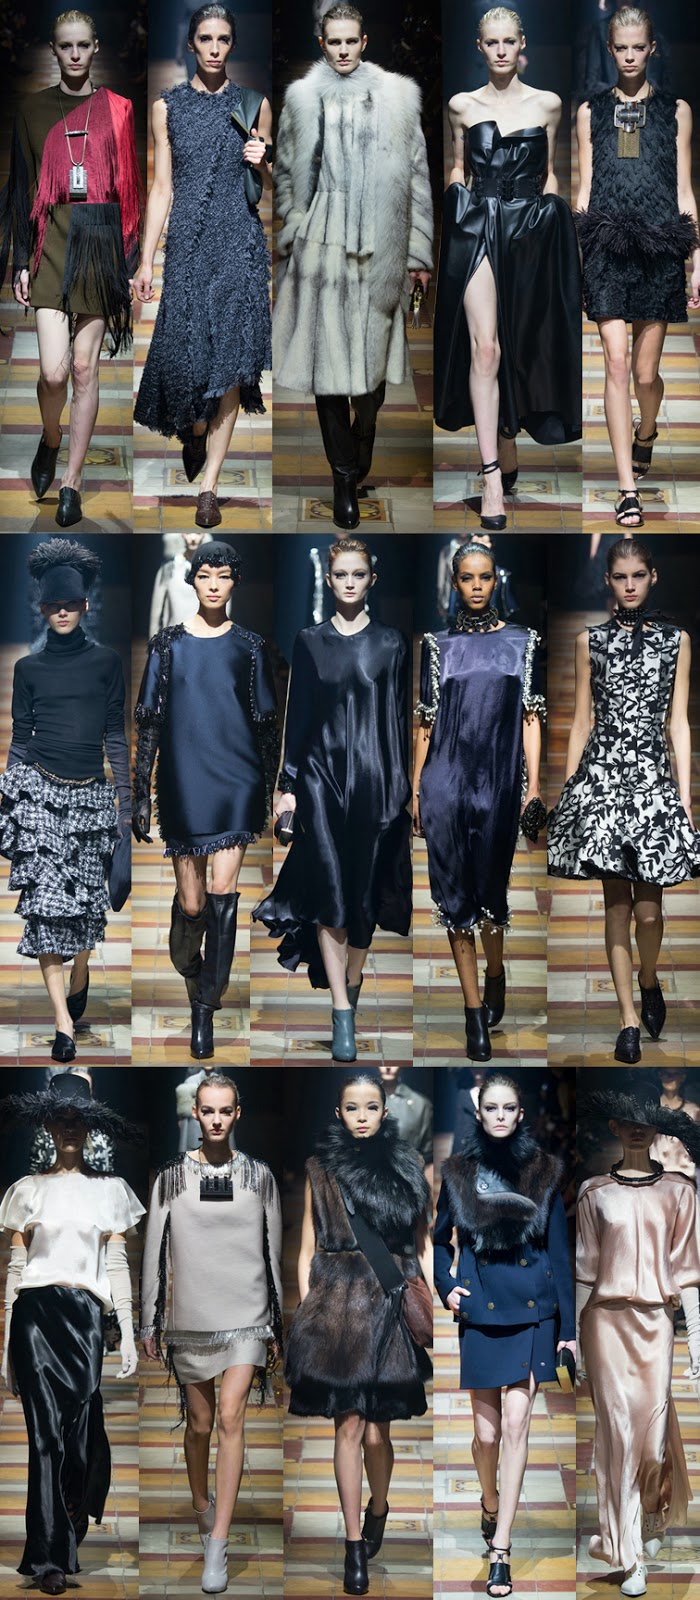 Lanvin by Alber Elbaz fall winter 2014 runway collection, PFW, Paris fashion week, FW14, AW14